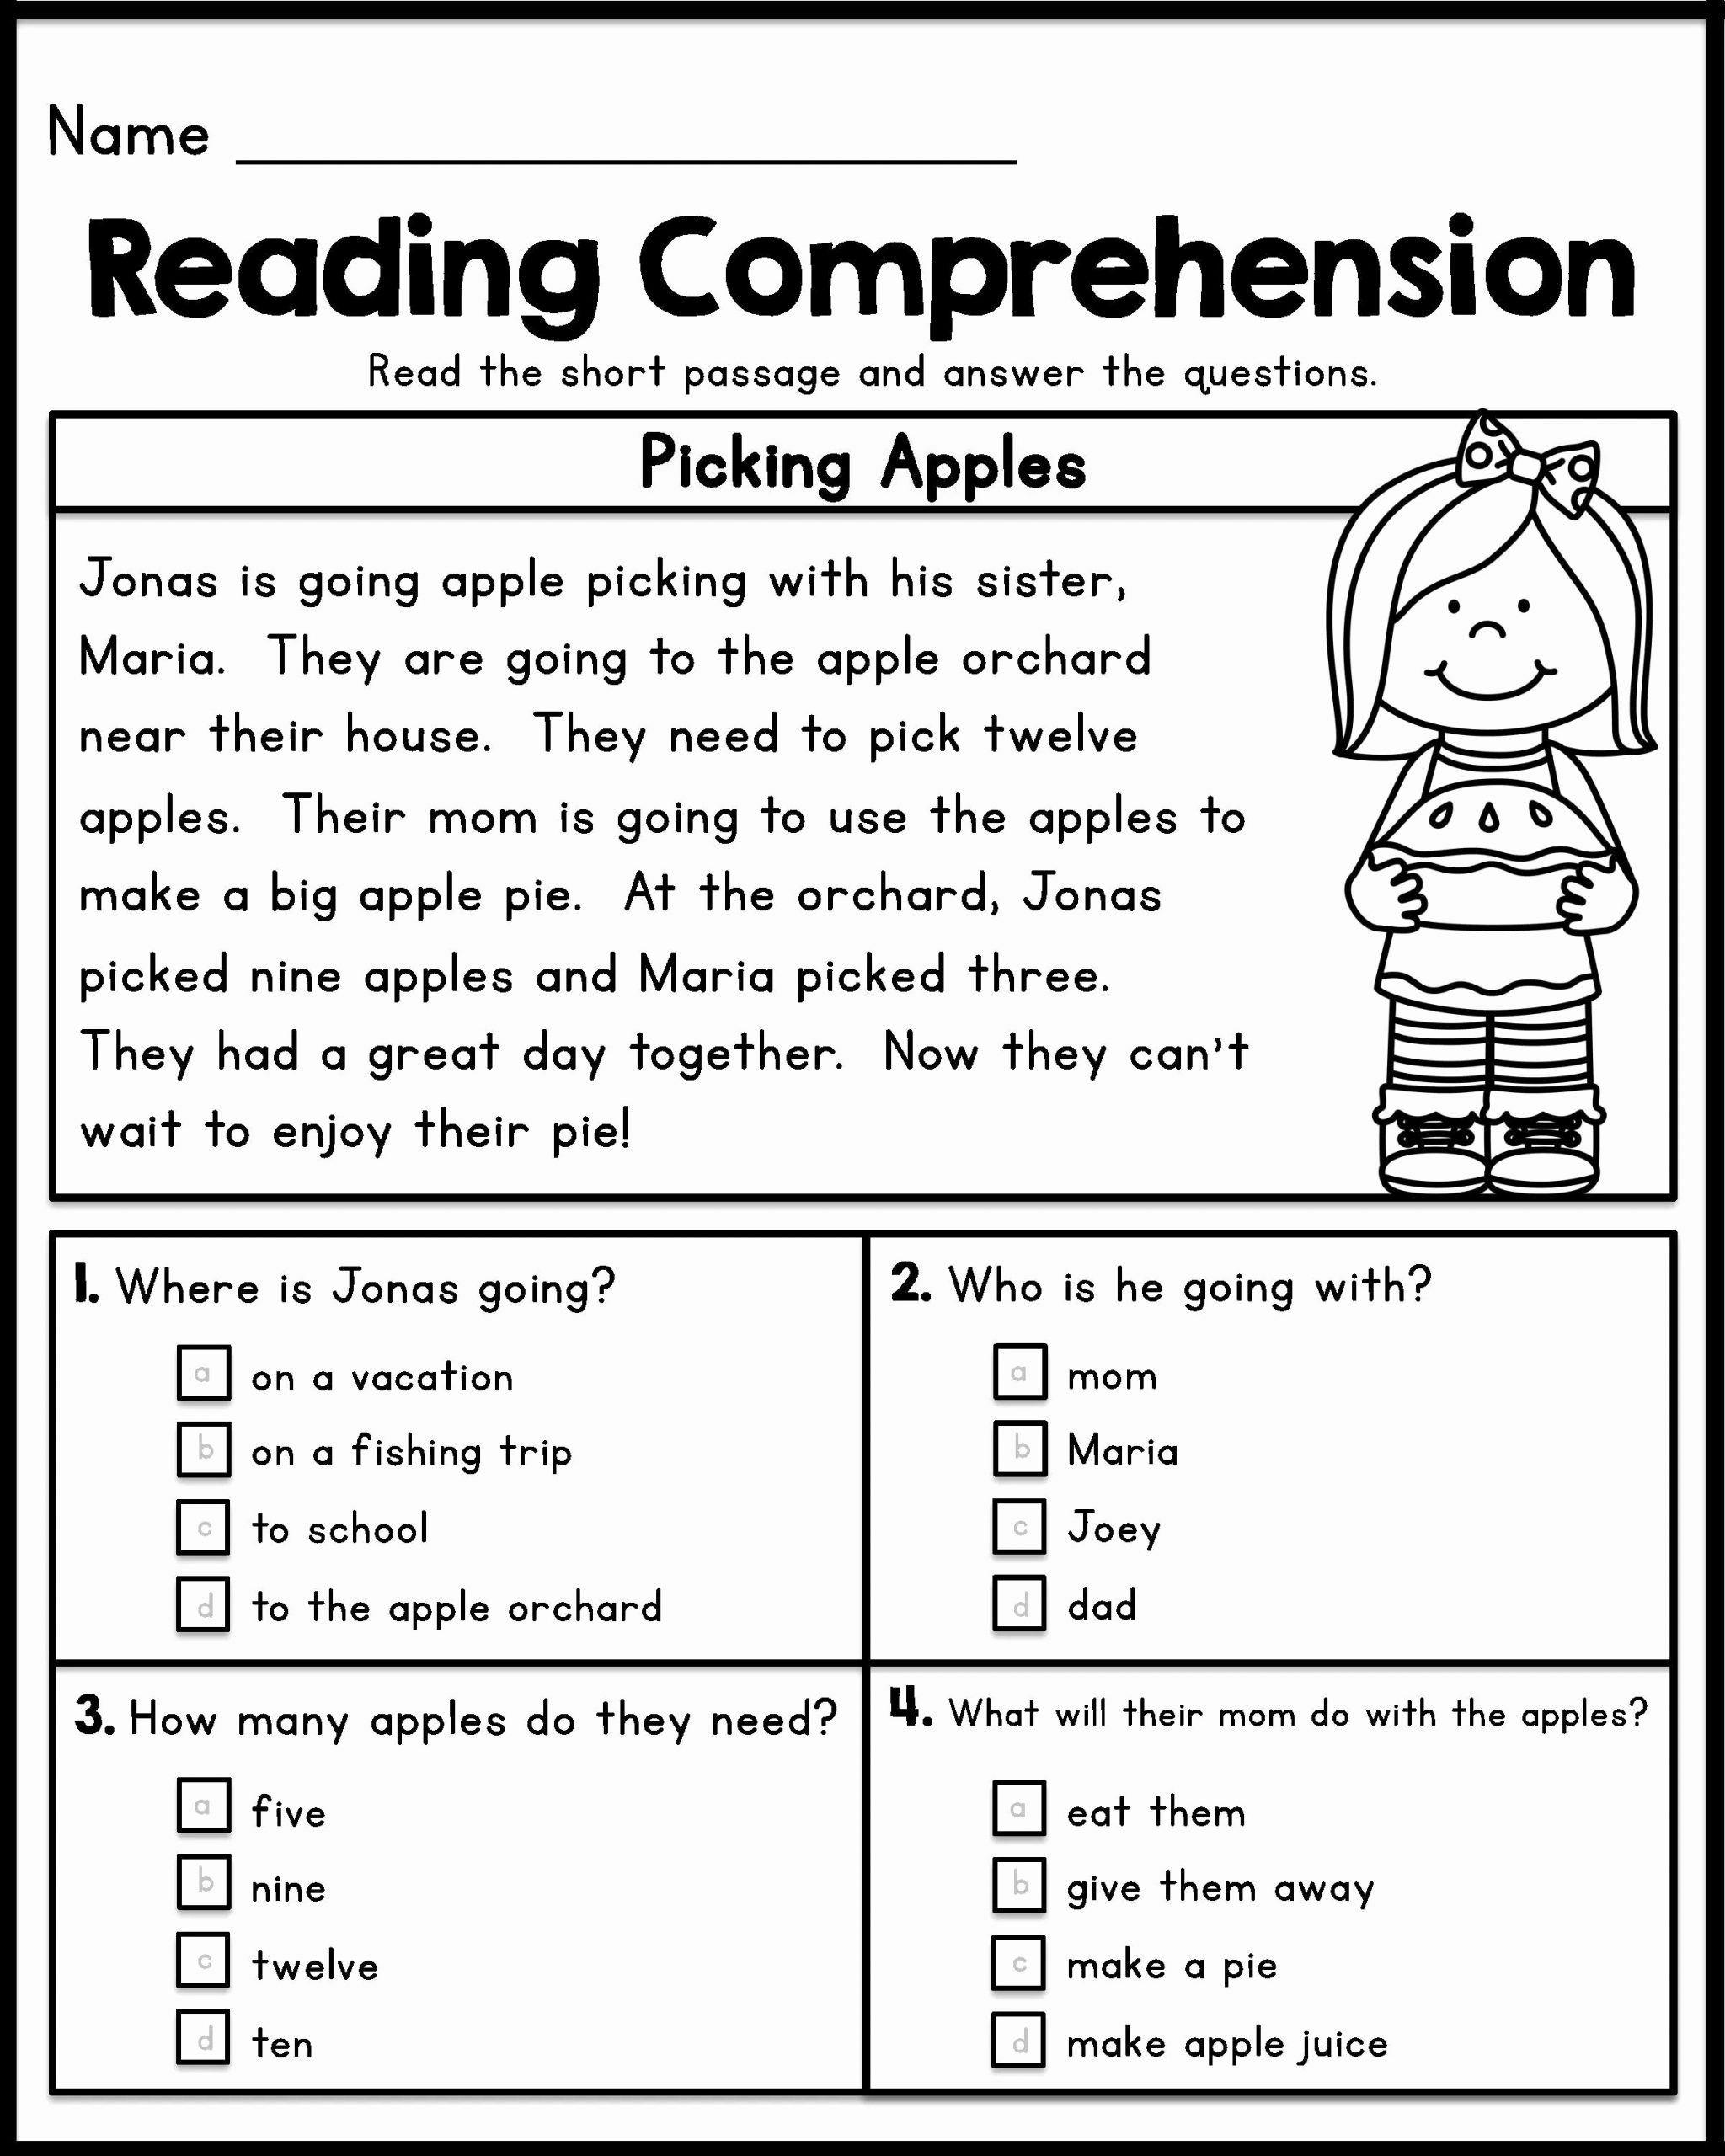 Comprehension Worksheet First Grade Beautiful 12 Good Examples 1st Grade Worksheets Free Download